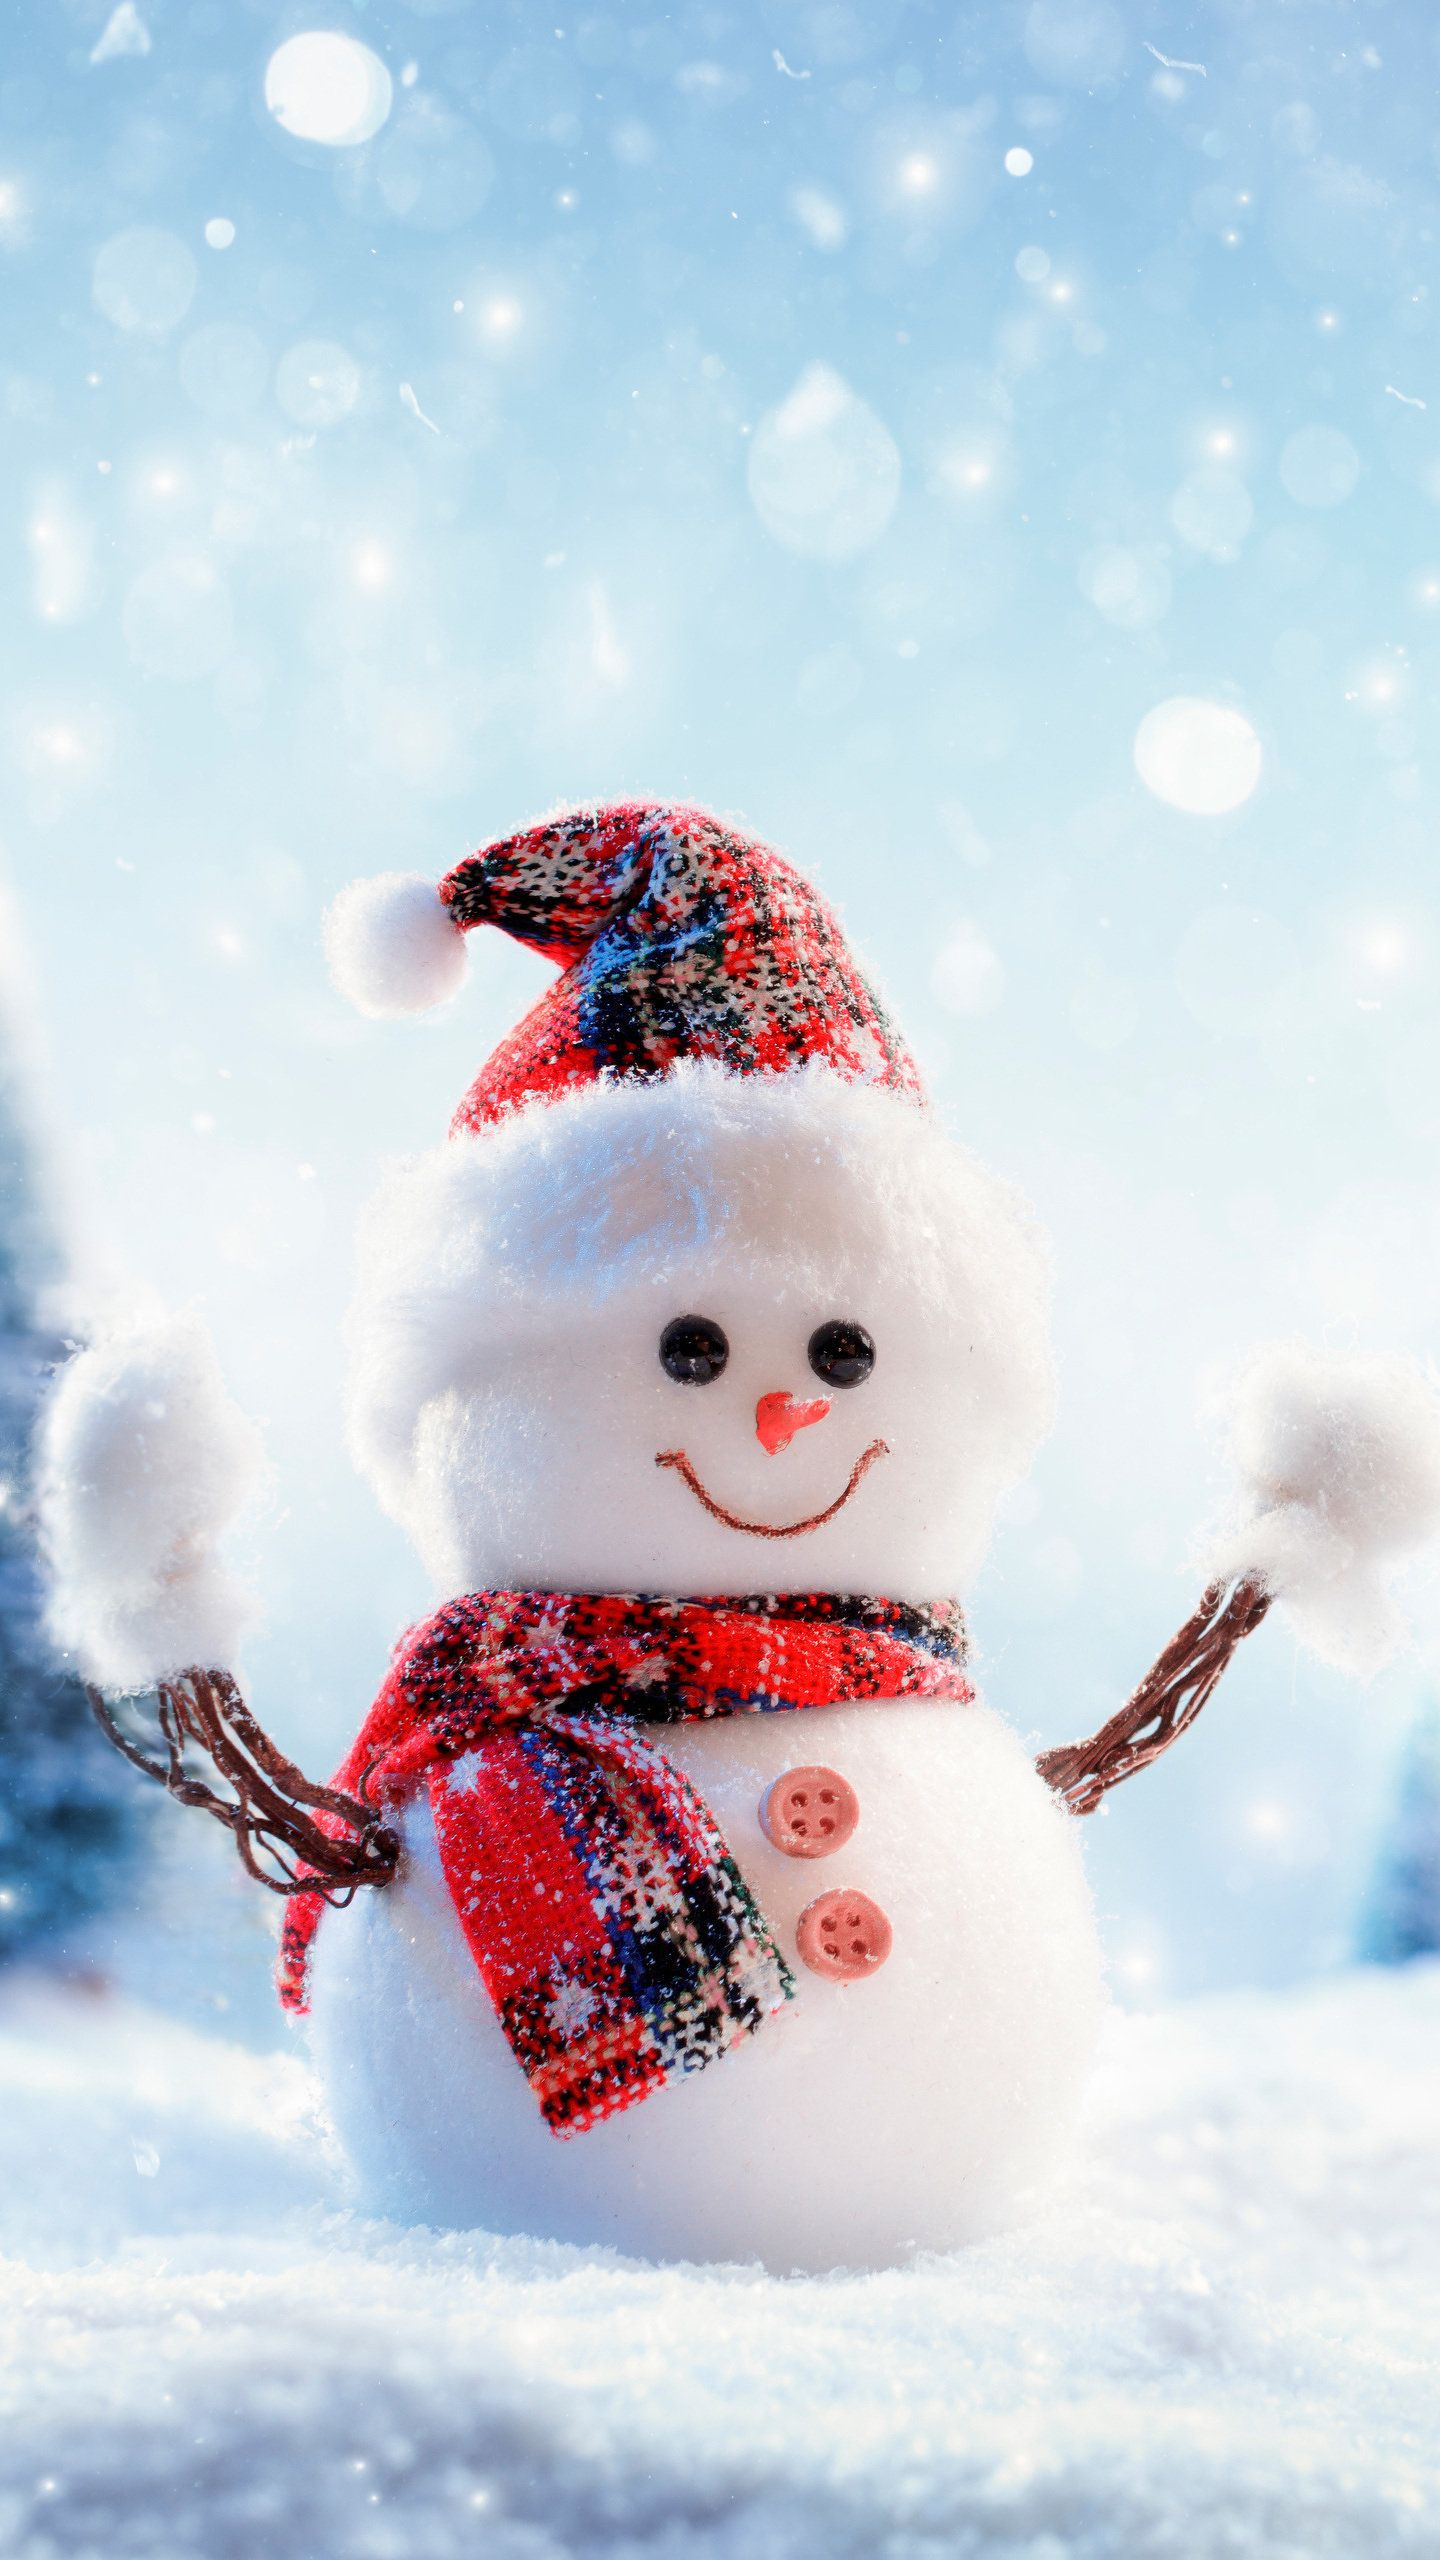 Snowman 8K, HD Photography Wallpapers Photos and Pictures